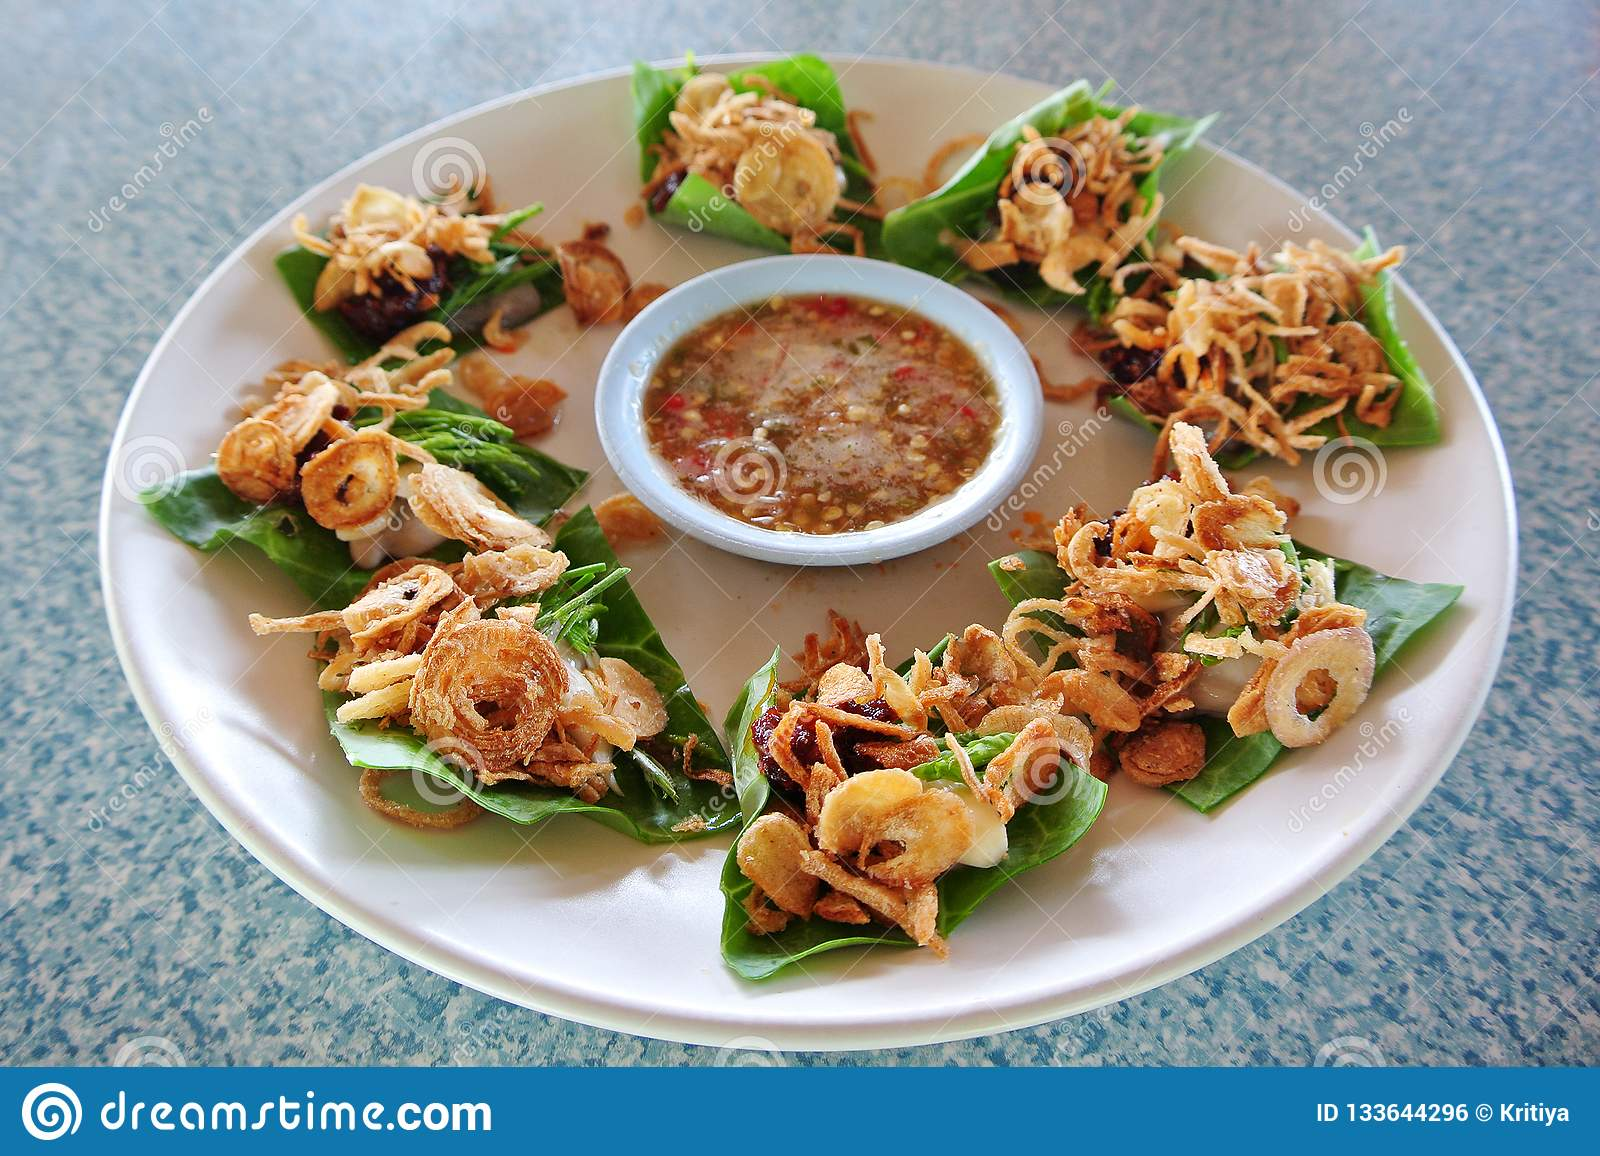 Fresh Oysters With Fried Red Onion And Seafood Chili Sauce Serve On Green Kale Leaf Thai Cuisine Style Stock Photo Image Of Bangkok Seafood 133644296